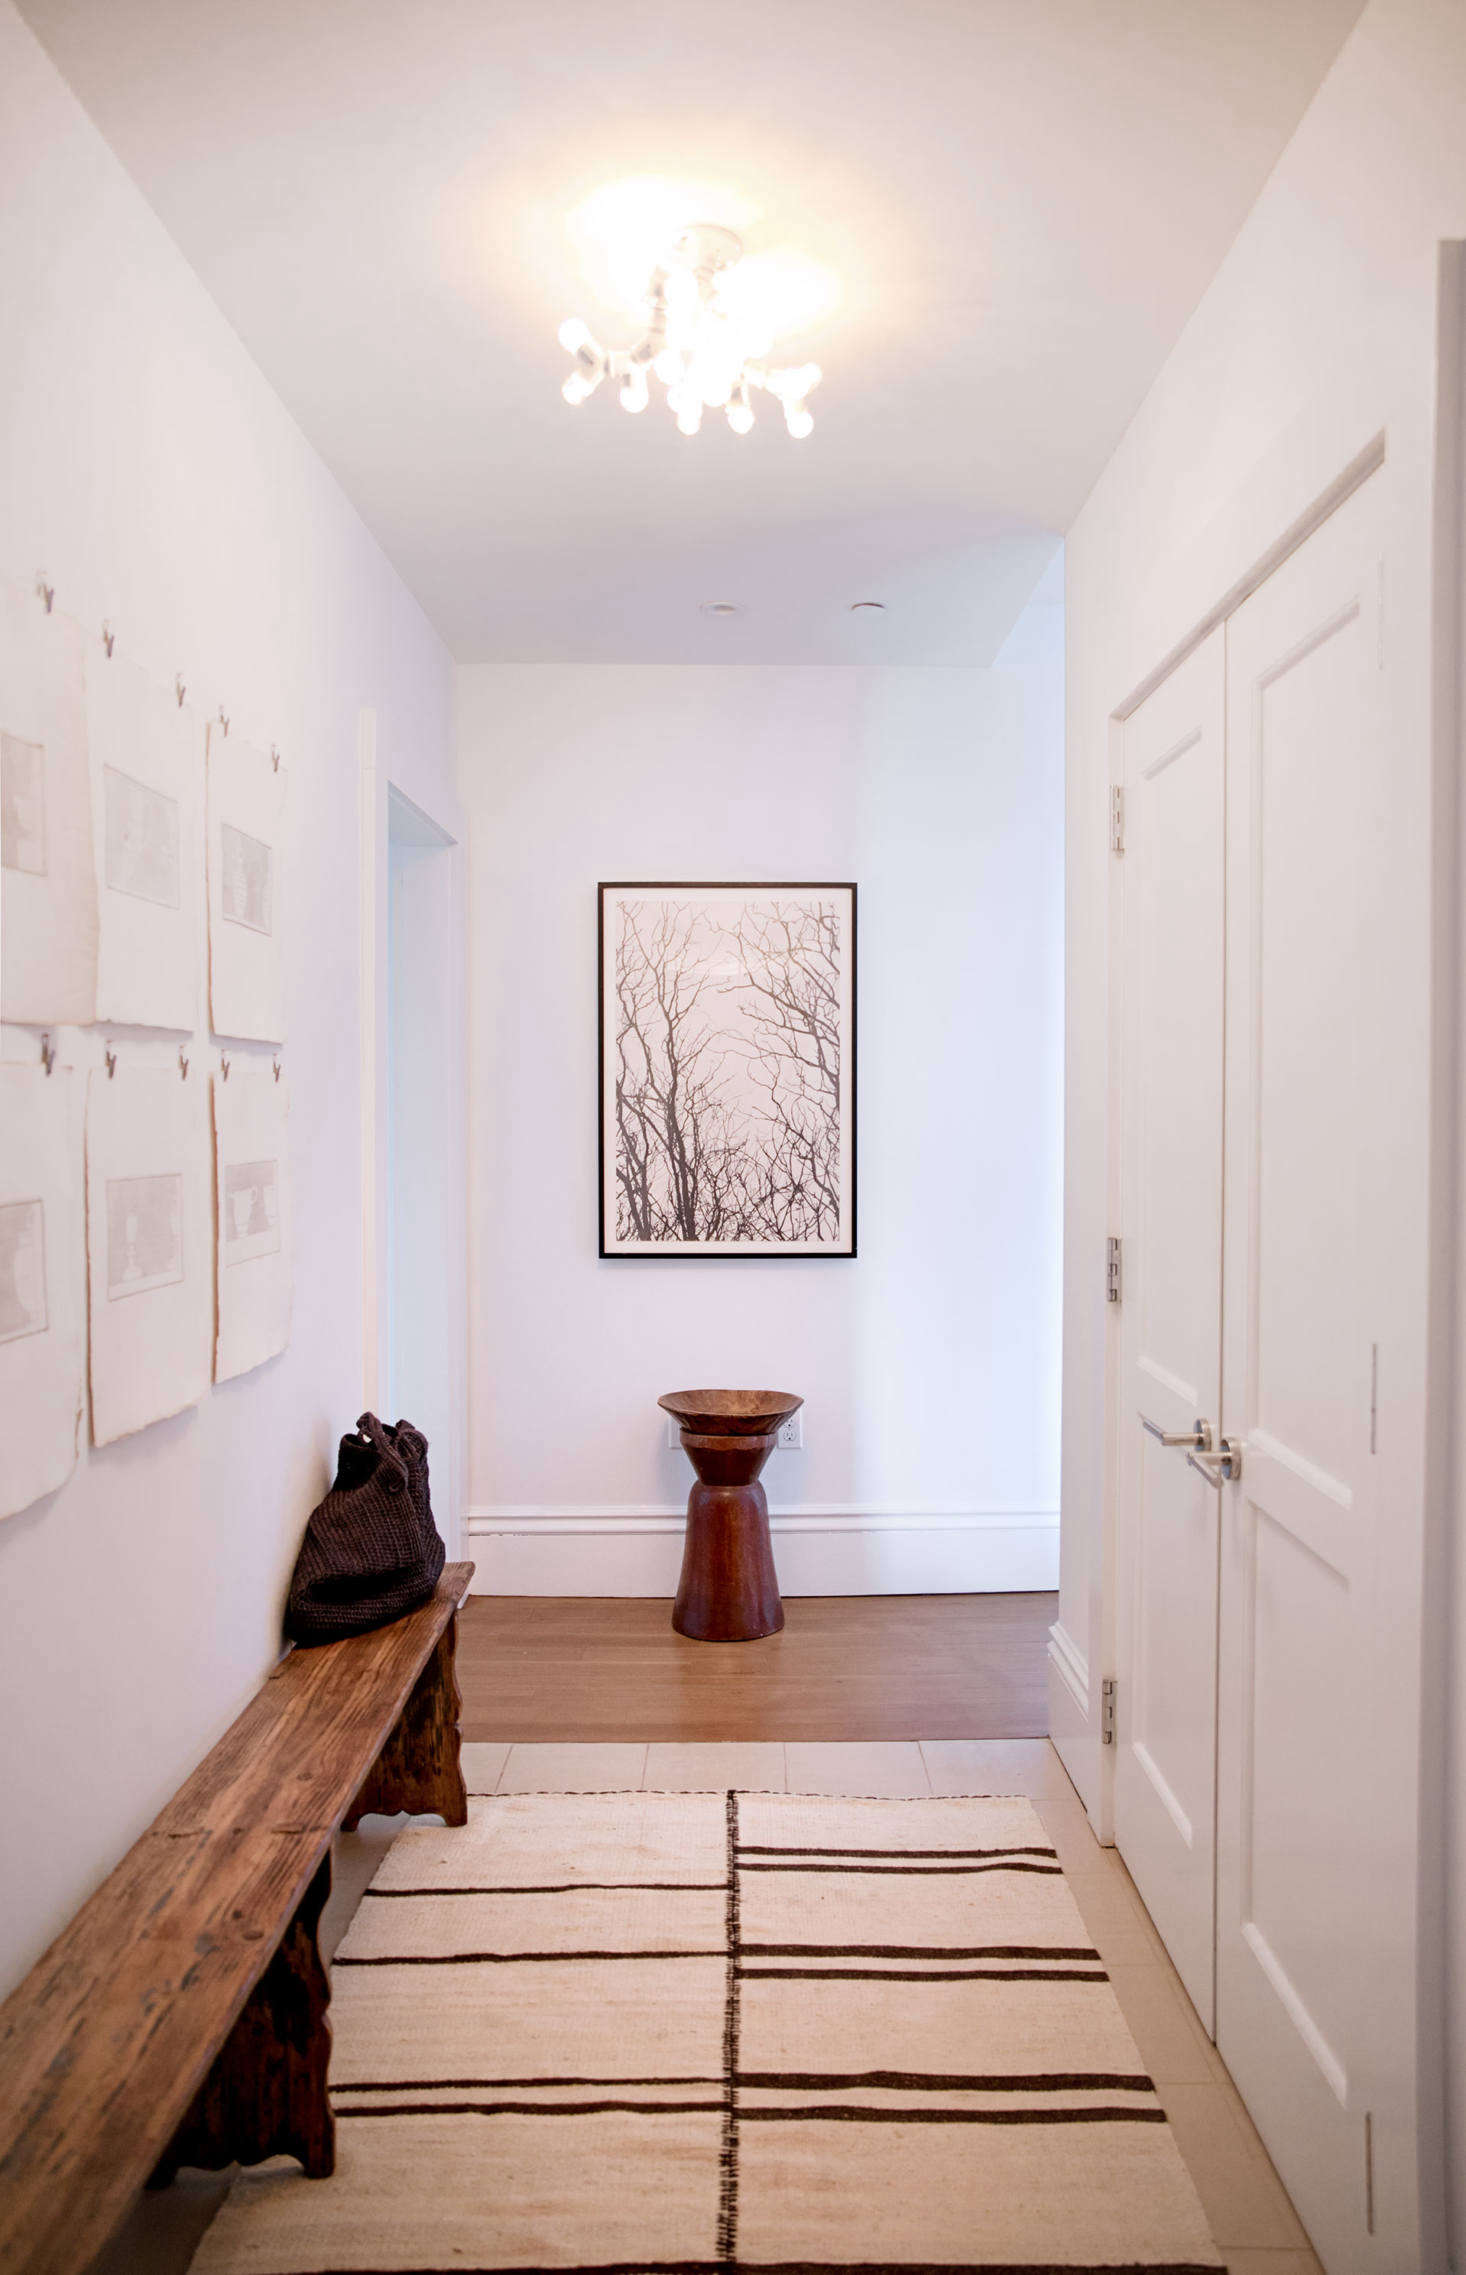 The entry hall is illuminated by a playful light that Jeffrey made from Home Depot parts.